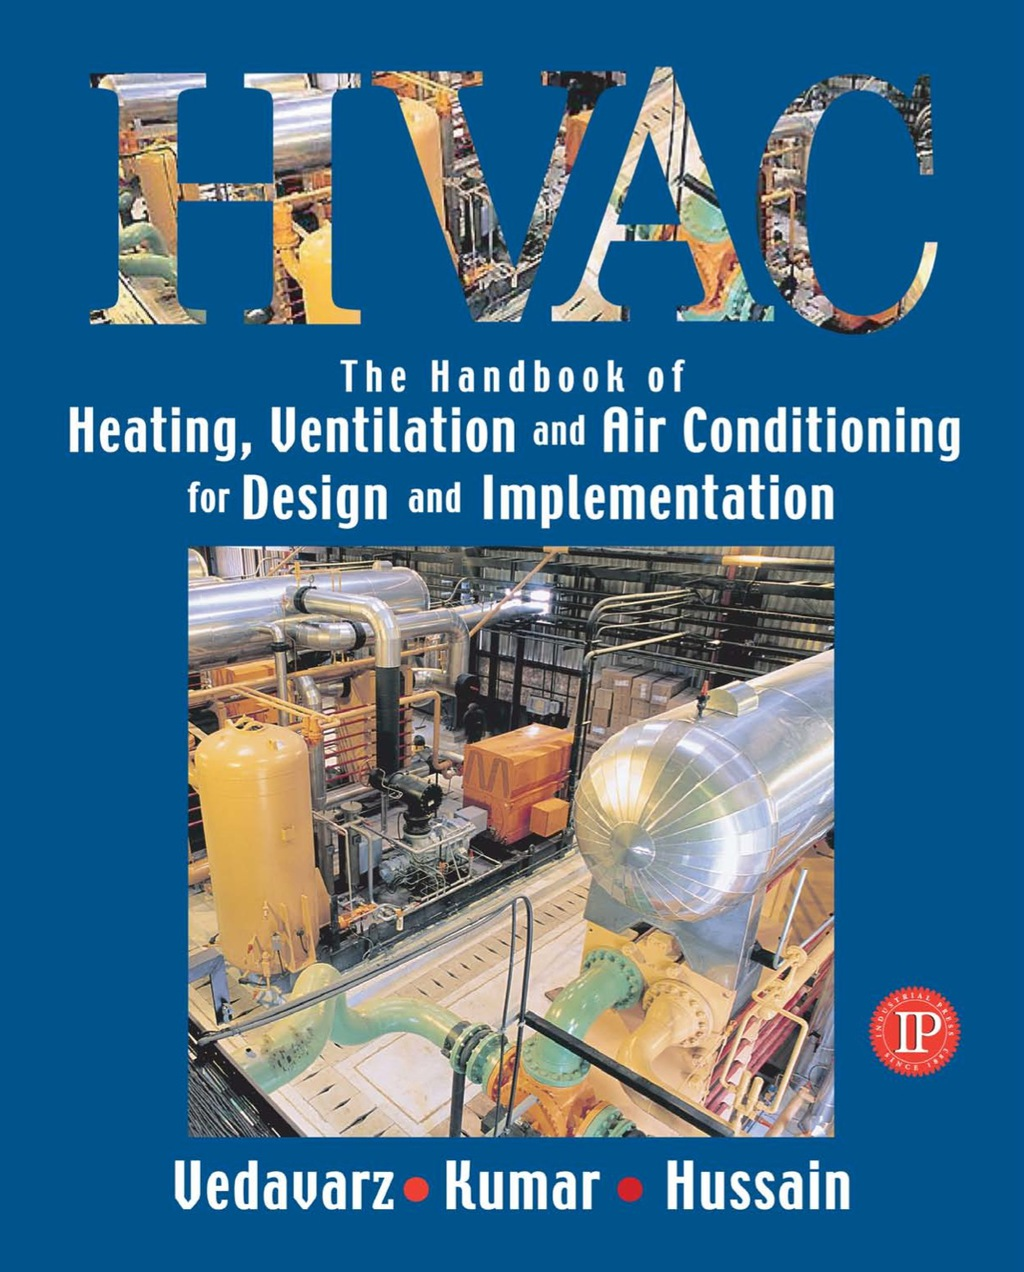 The Handbook of Heating, Ventilation and Air Conditioning for Design and Implementation (ebook) eBooks